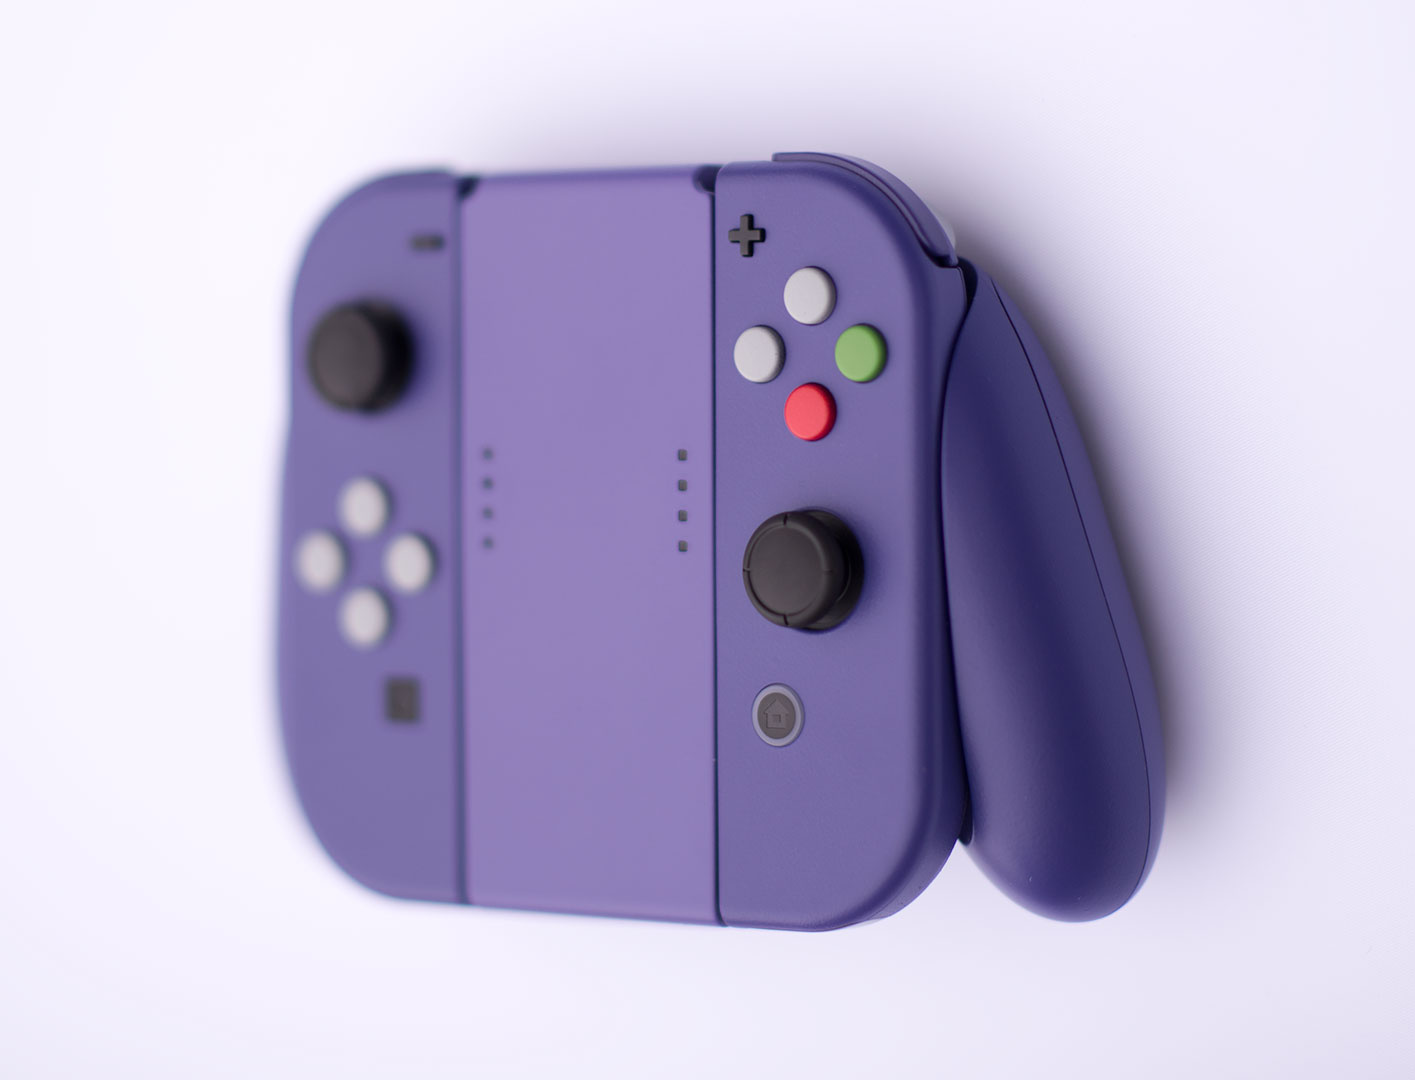 Behold The Majesty Of Gamecube Styled Nintendo Switch Joy Con Controller Wiring Diagram Right Stick Its Looking Likely That Will Be One New Systems Added When Gets Around To Unveiling All Virtual Console Service For